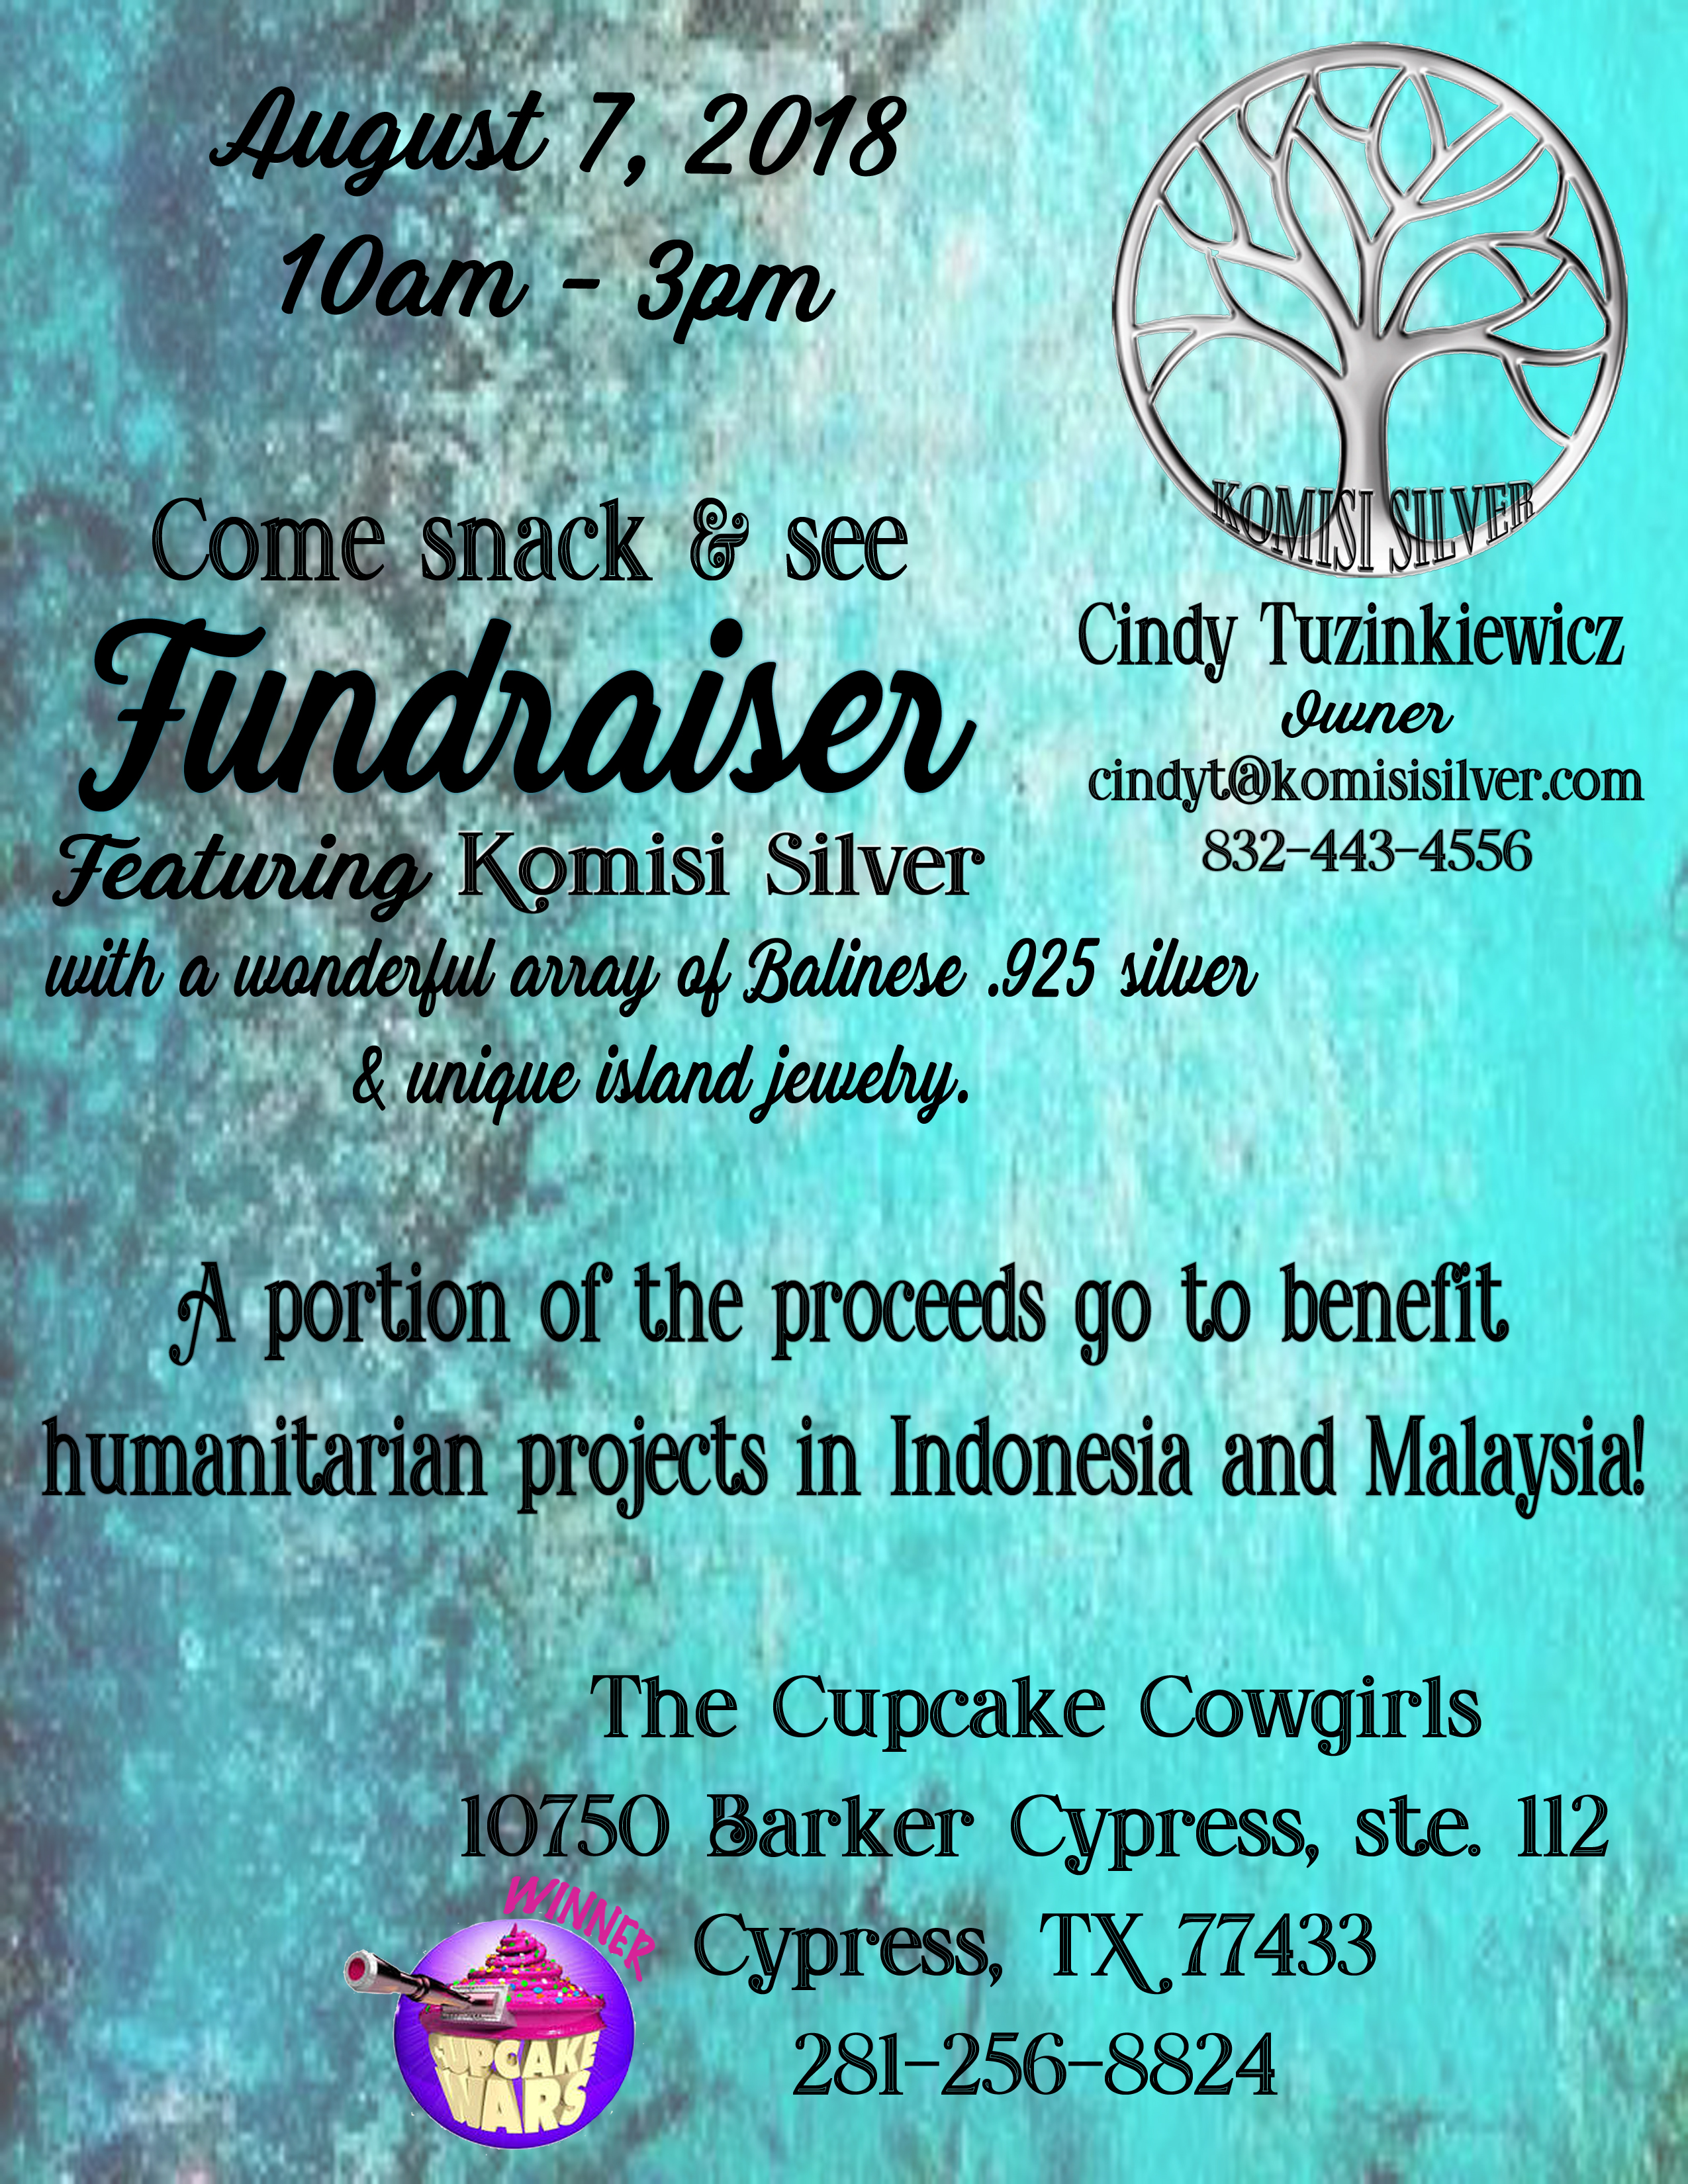 FINAL Fundraiser Flyer-Komisi Silver 1